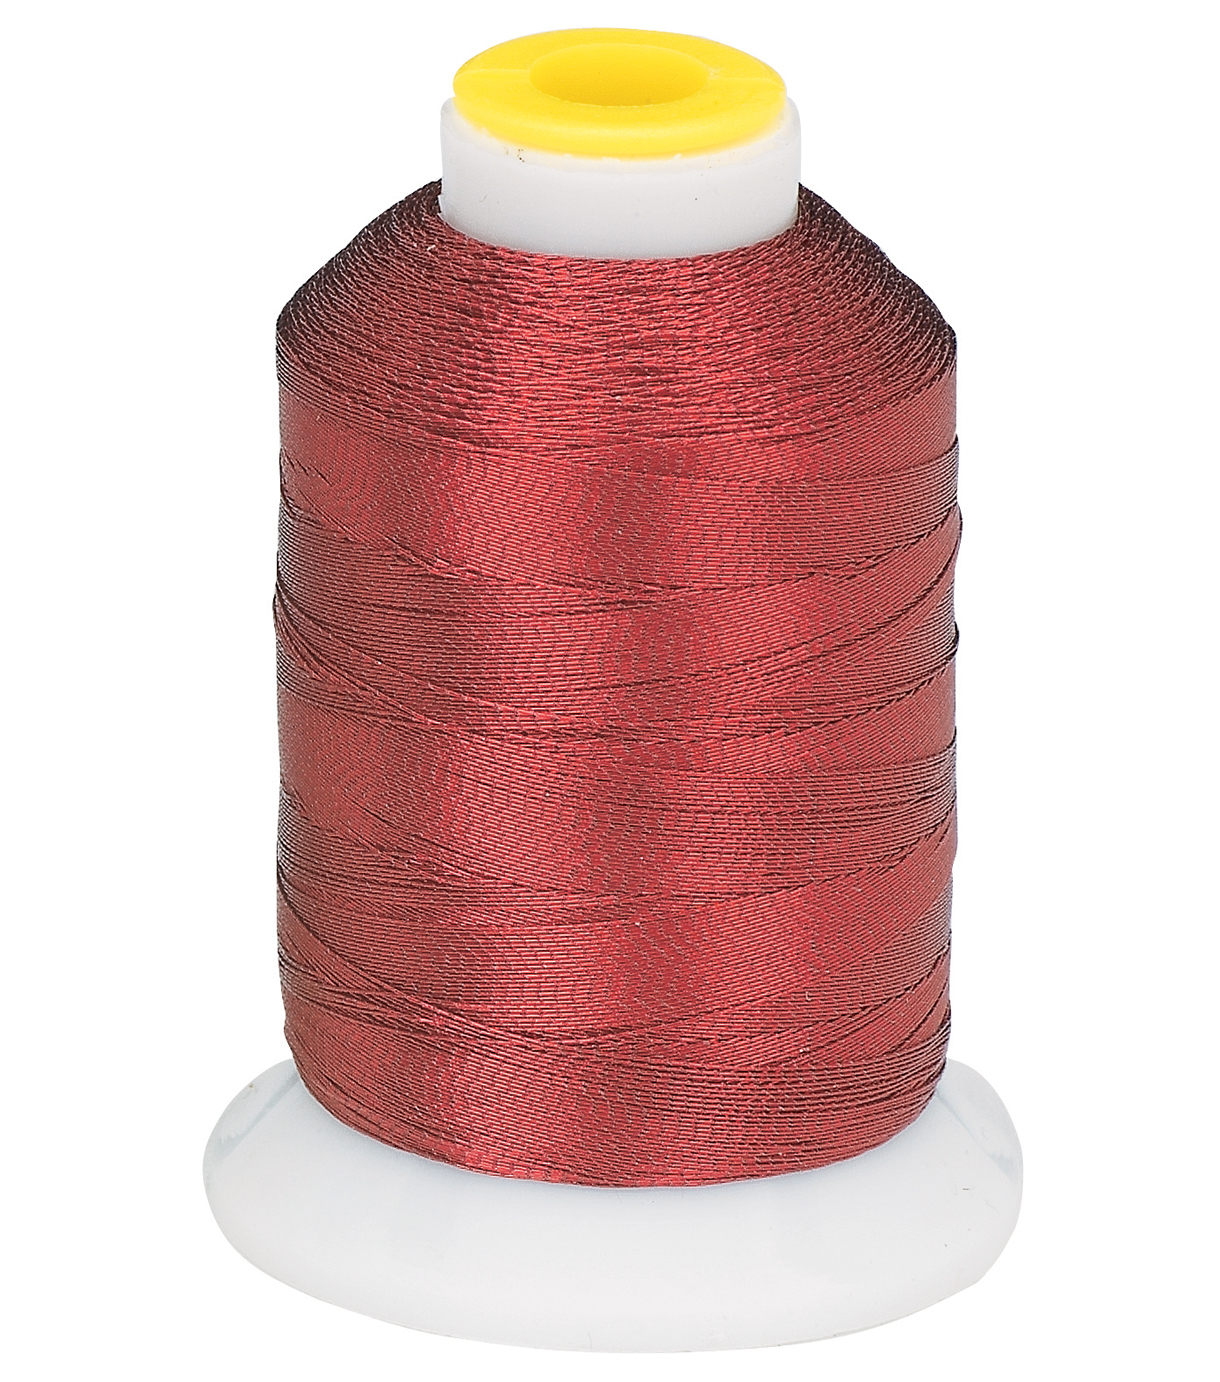 Coats & Clark Metallic Embroidery Thread, Metallic Ruby Embroidery Threa